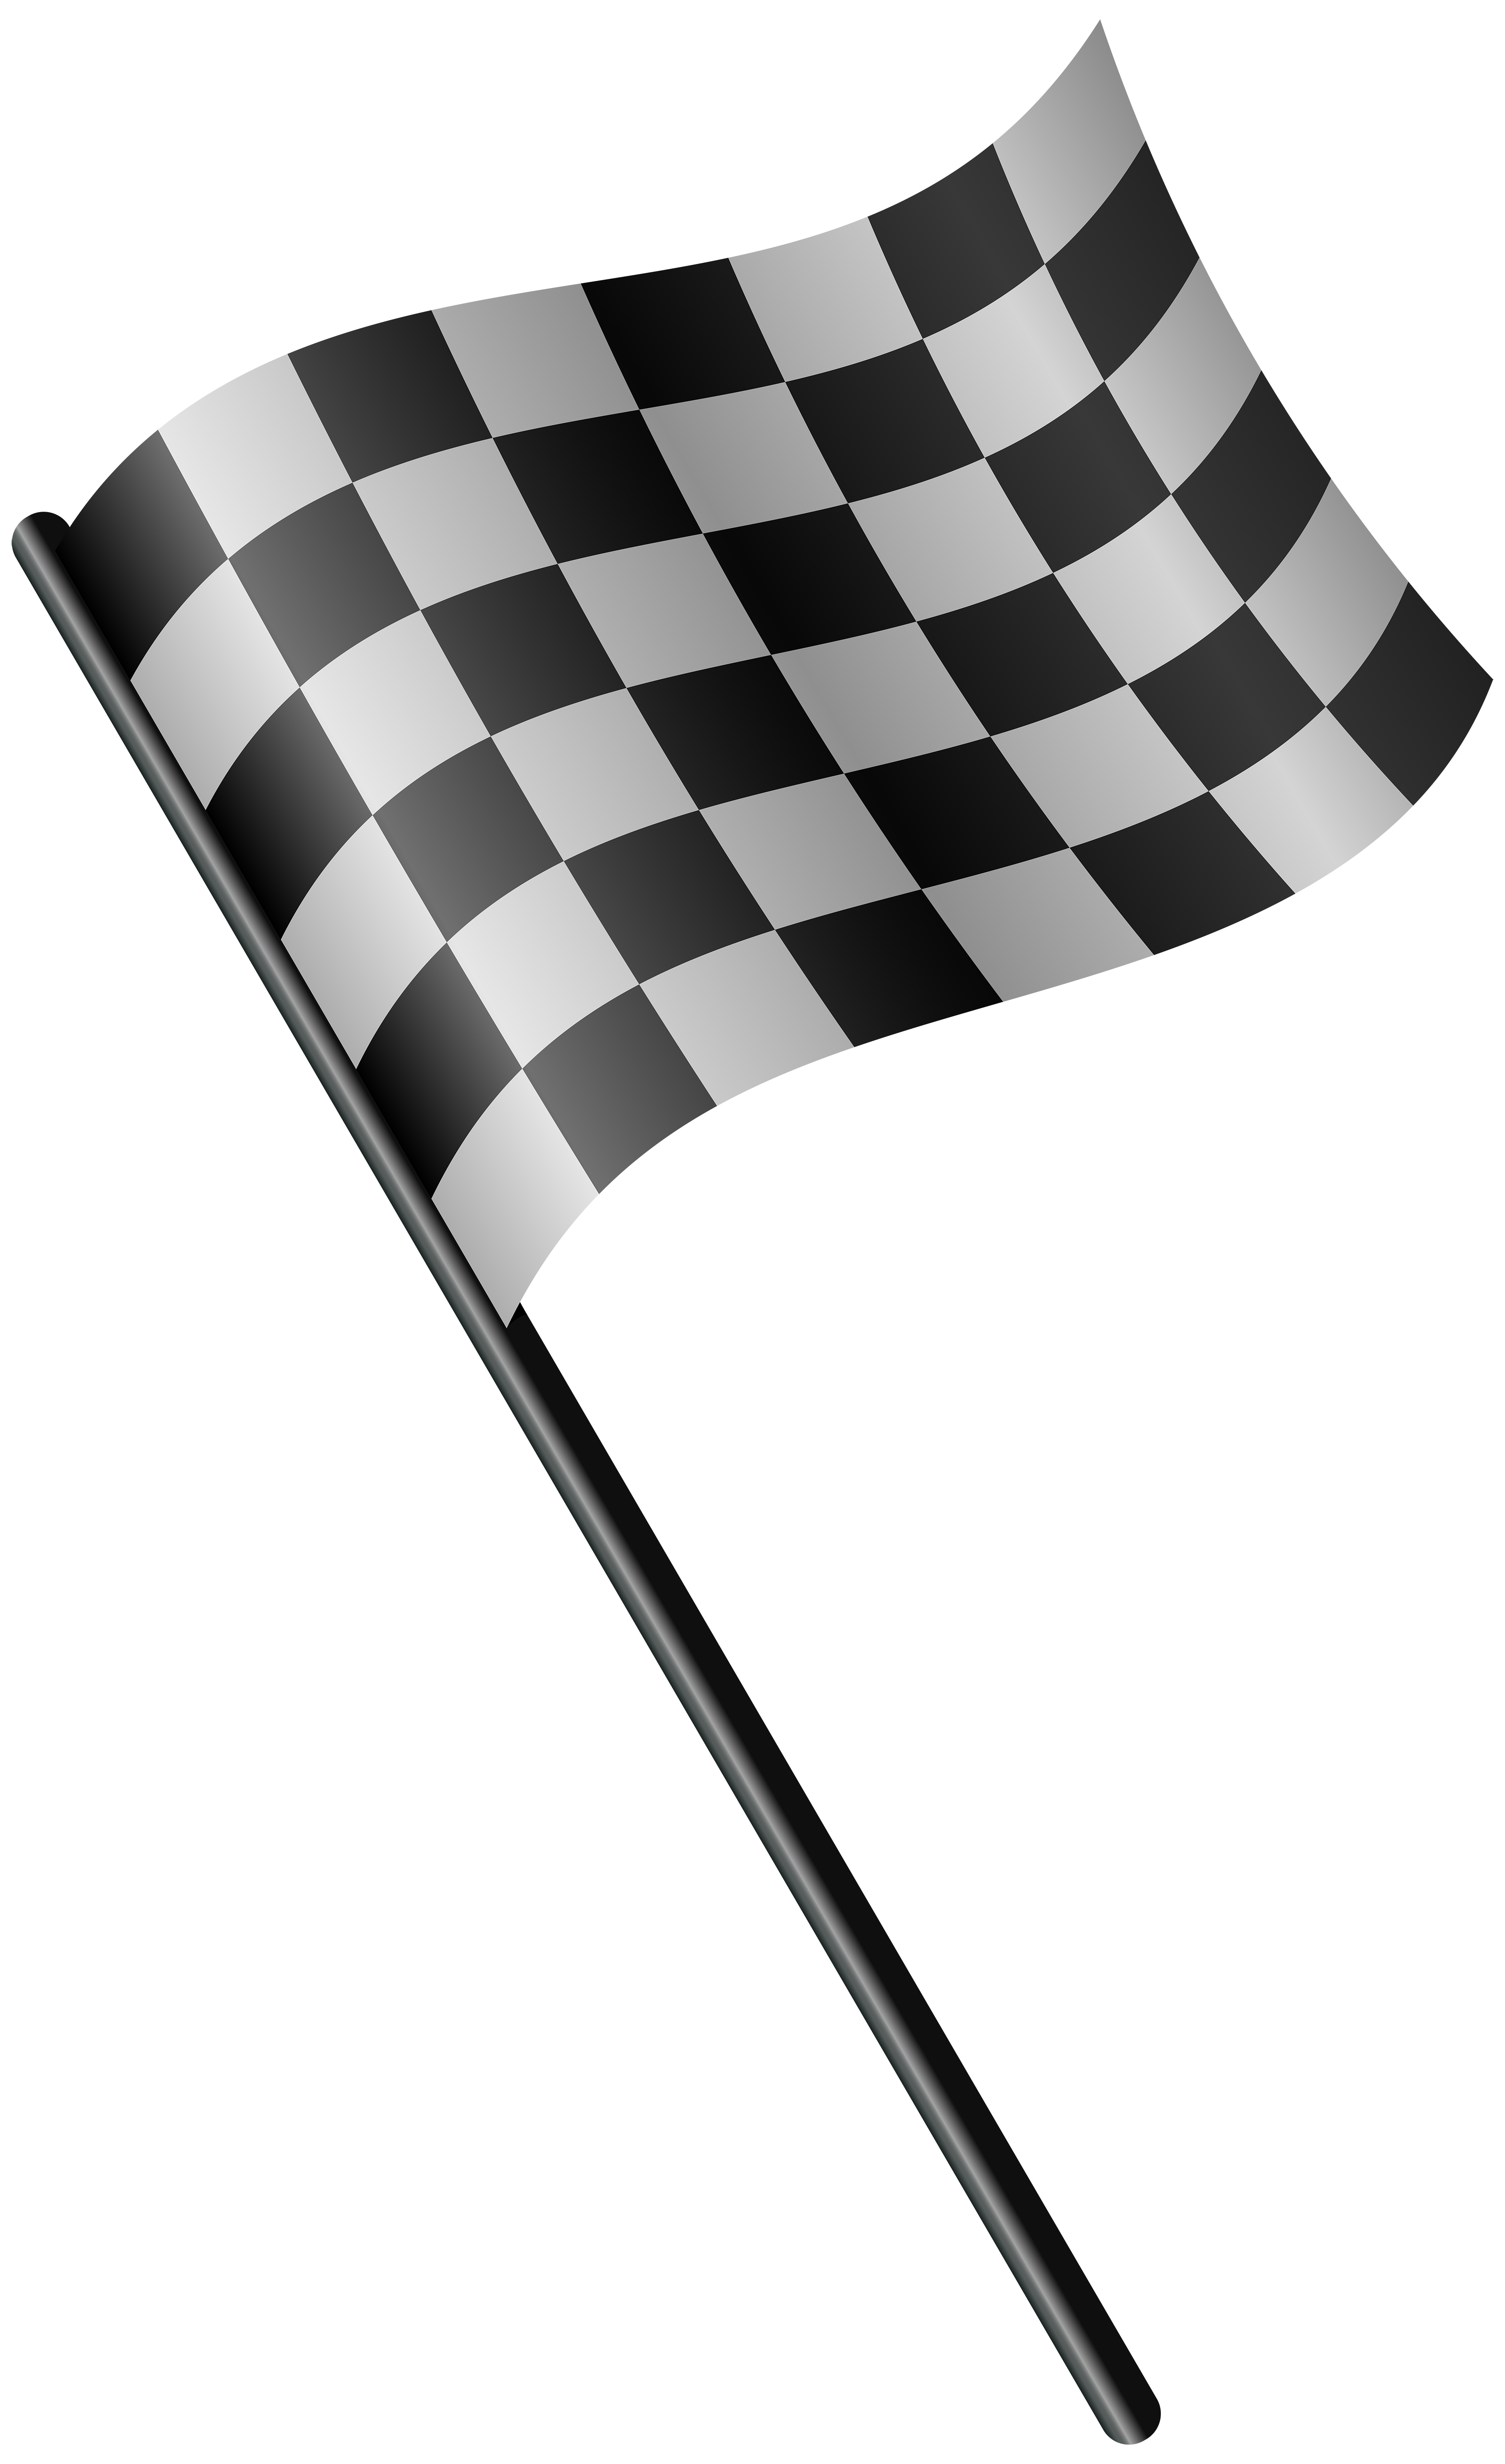 Flags clipart sport. Checkered flag png clip